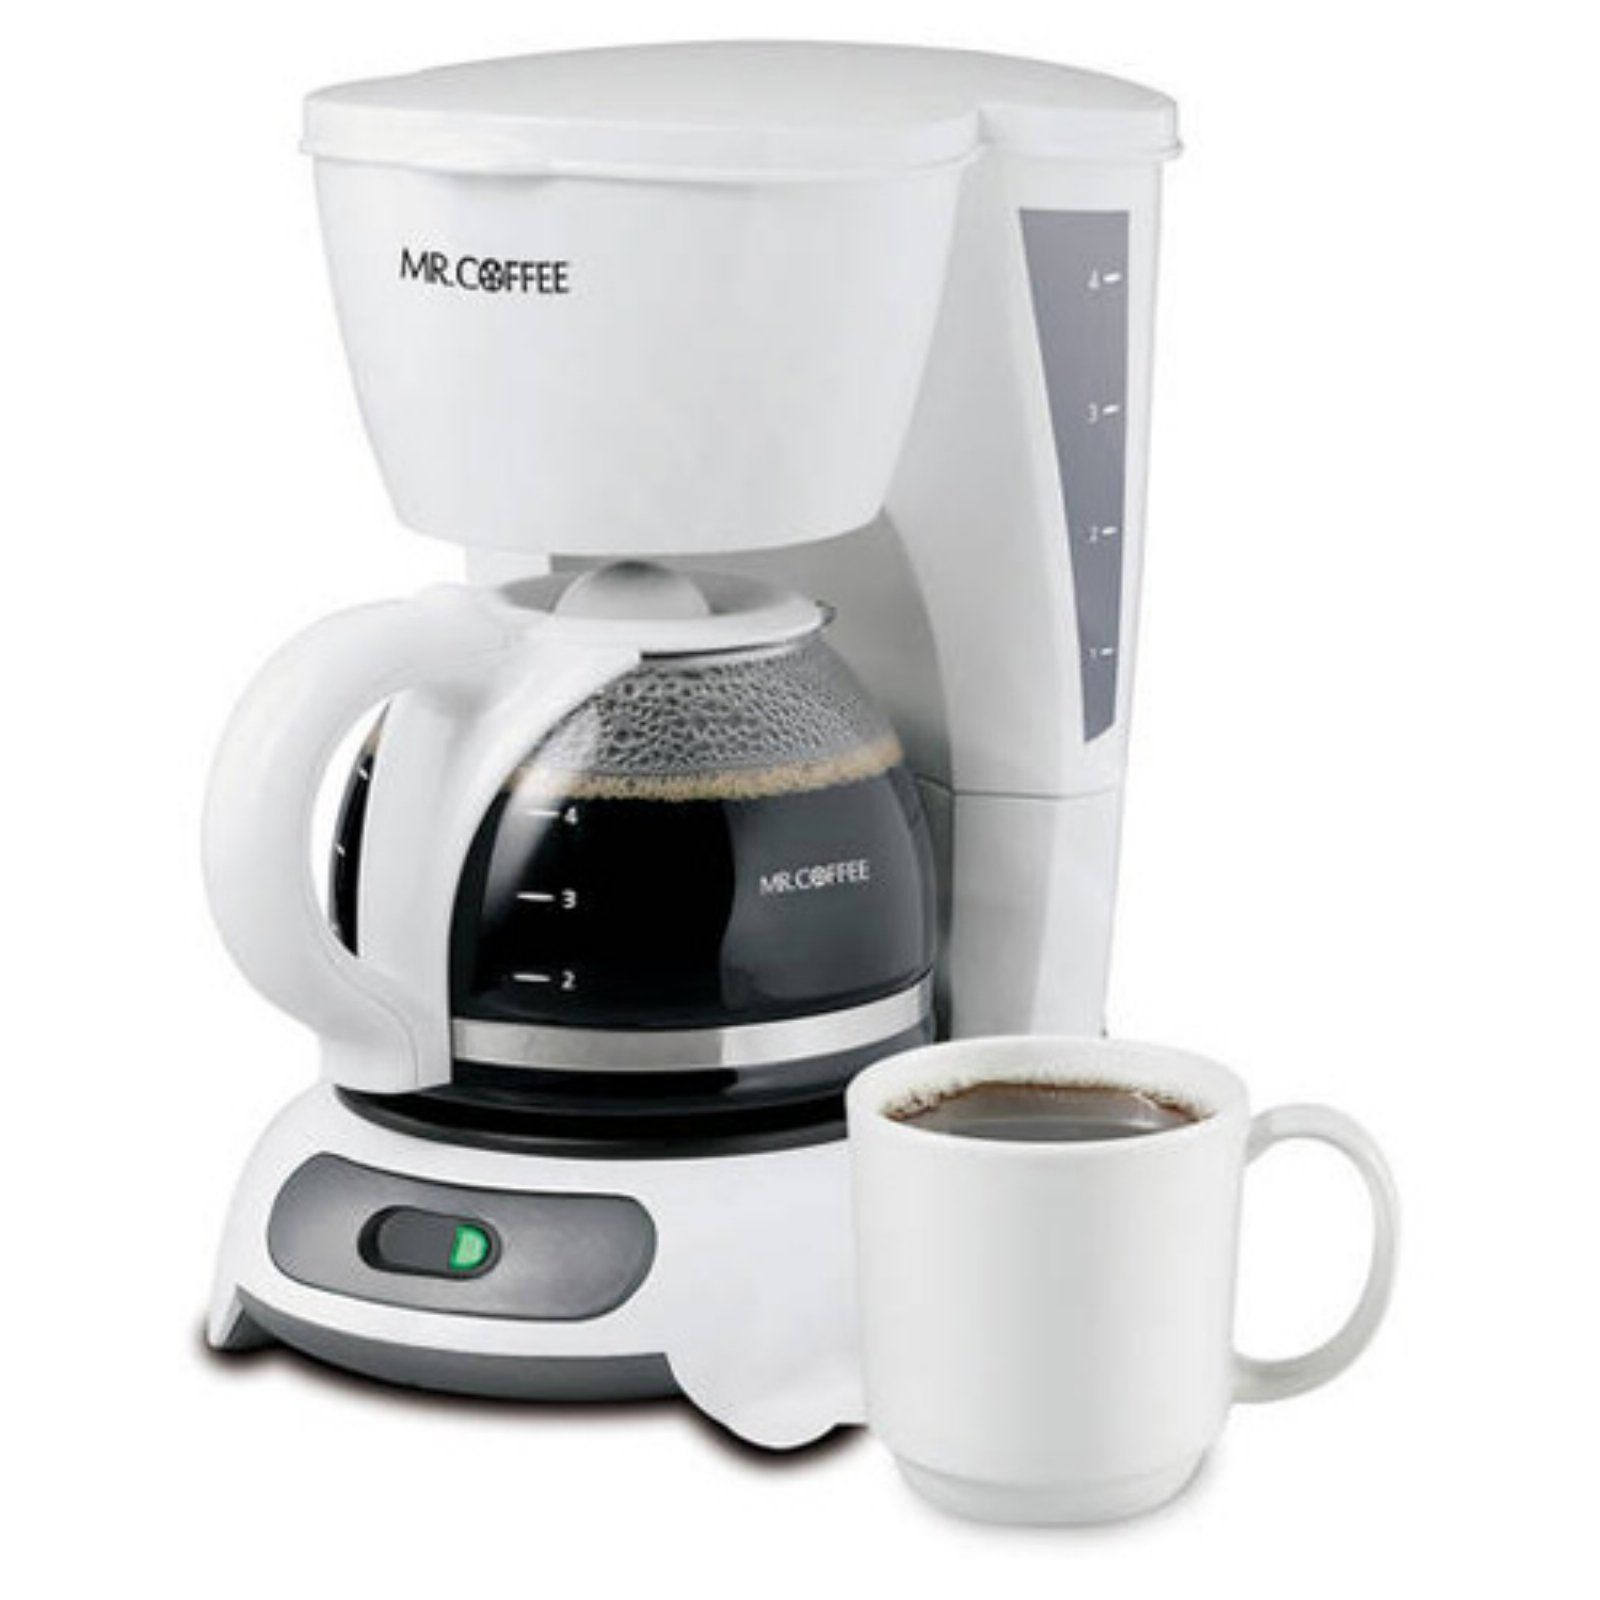 Mr Coffee 4 Cup Switch Coffee Maker White Tf4 In 2020 Cuisinart Coffee Maker Single Cup Coffee Maker Coffee Maker